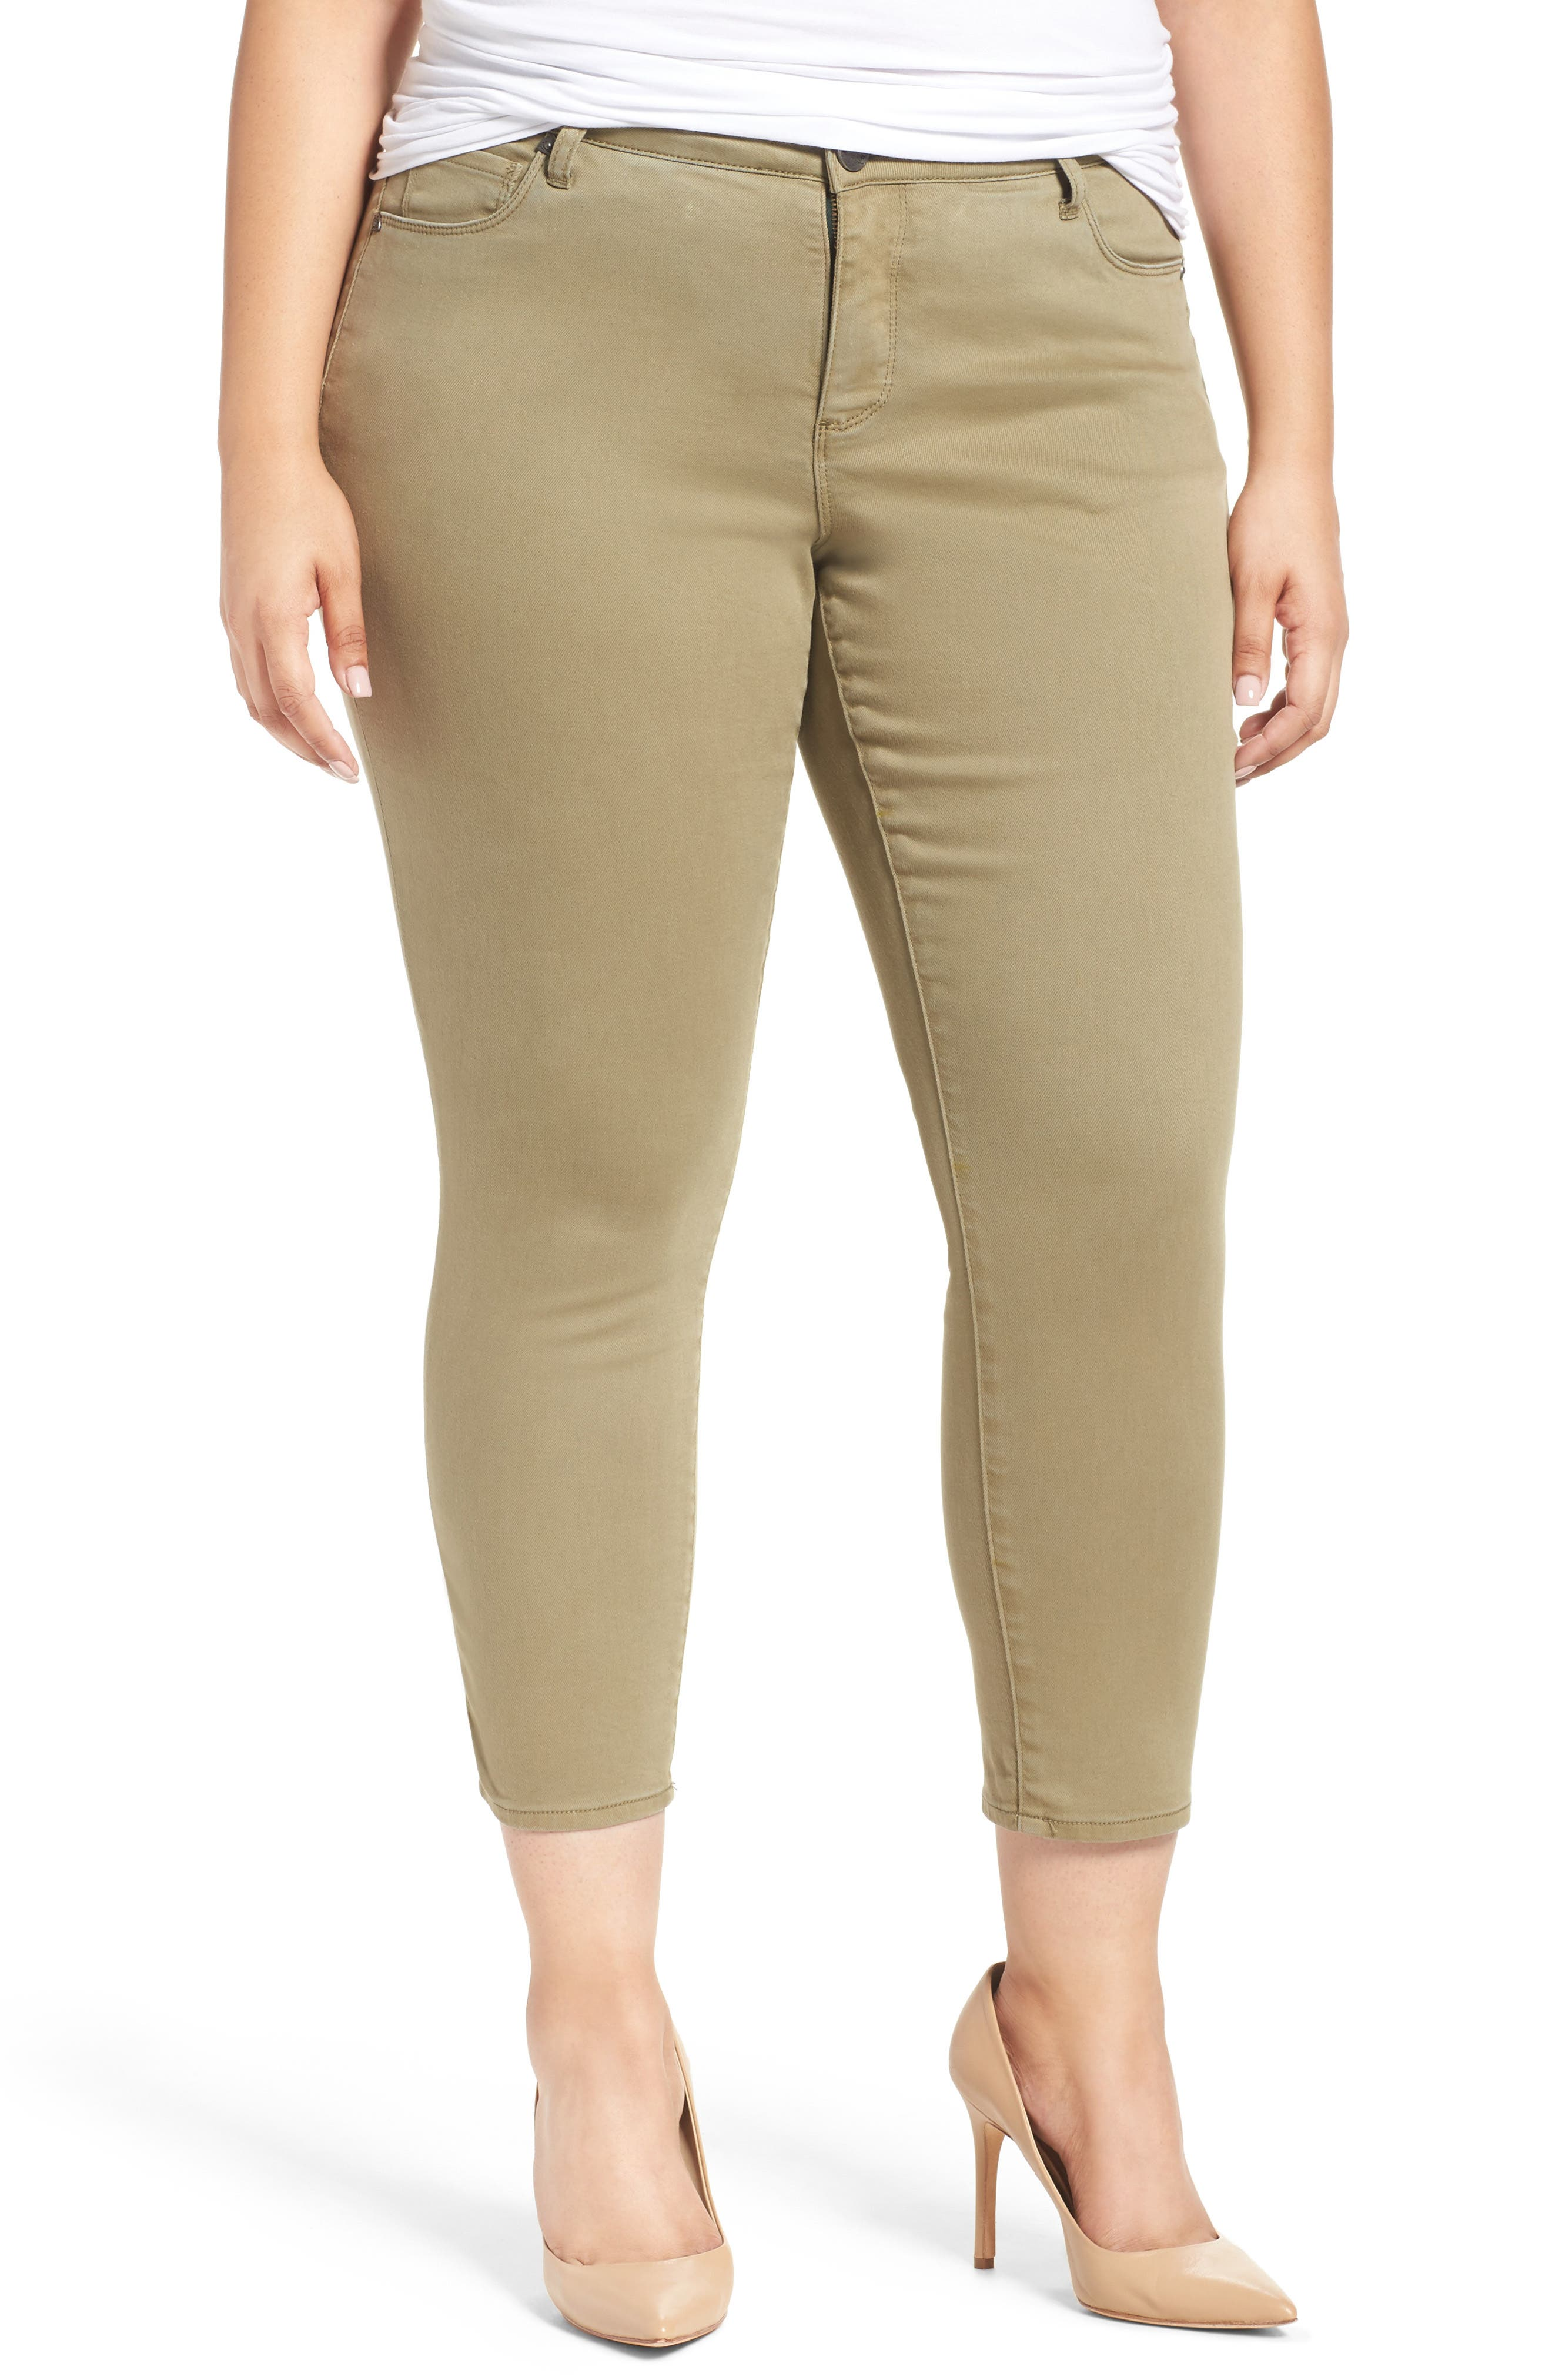 Reese Stretch Ankle Skinny Pants,                             Main thumbnail 1, color,                             OLIVE